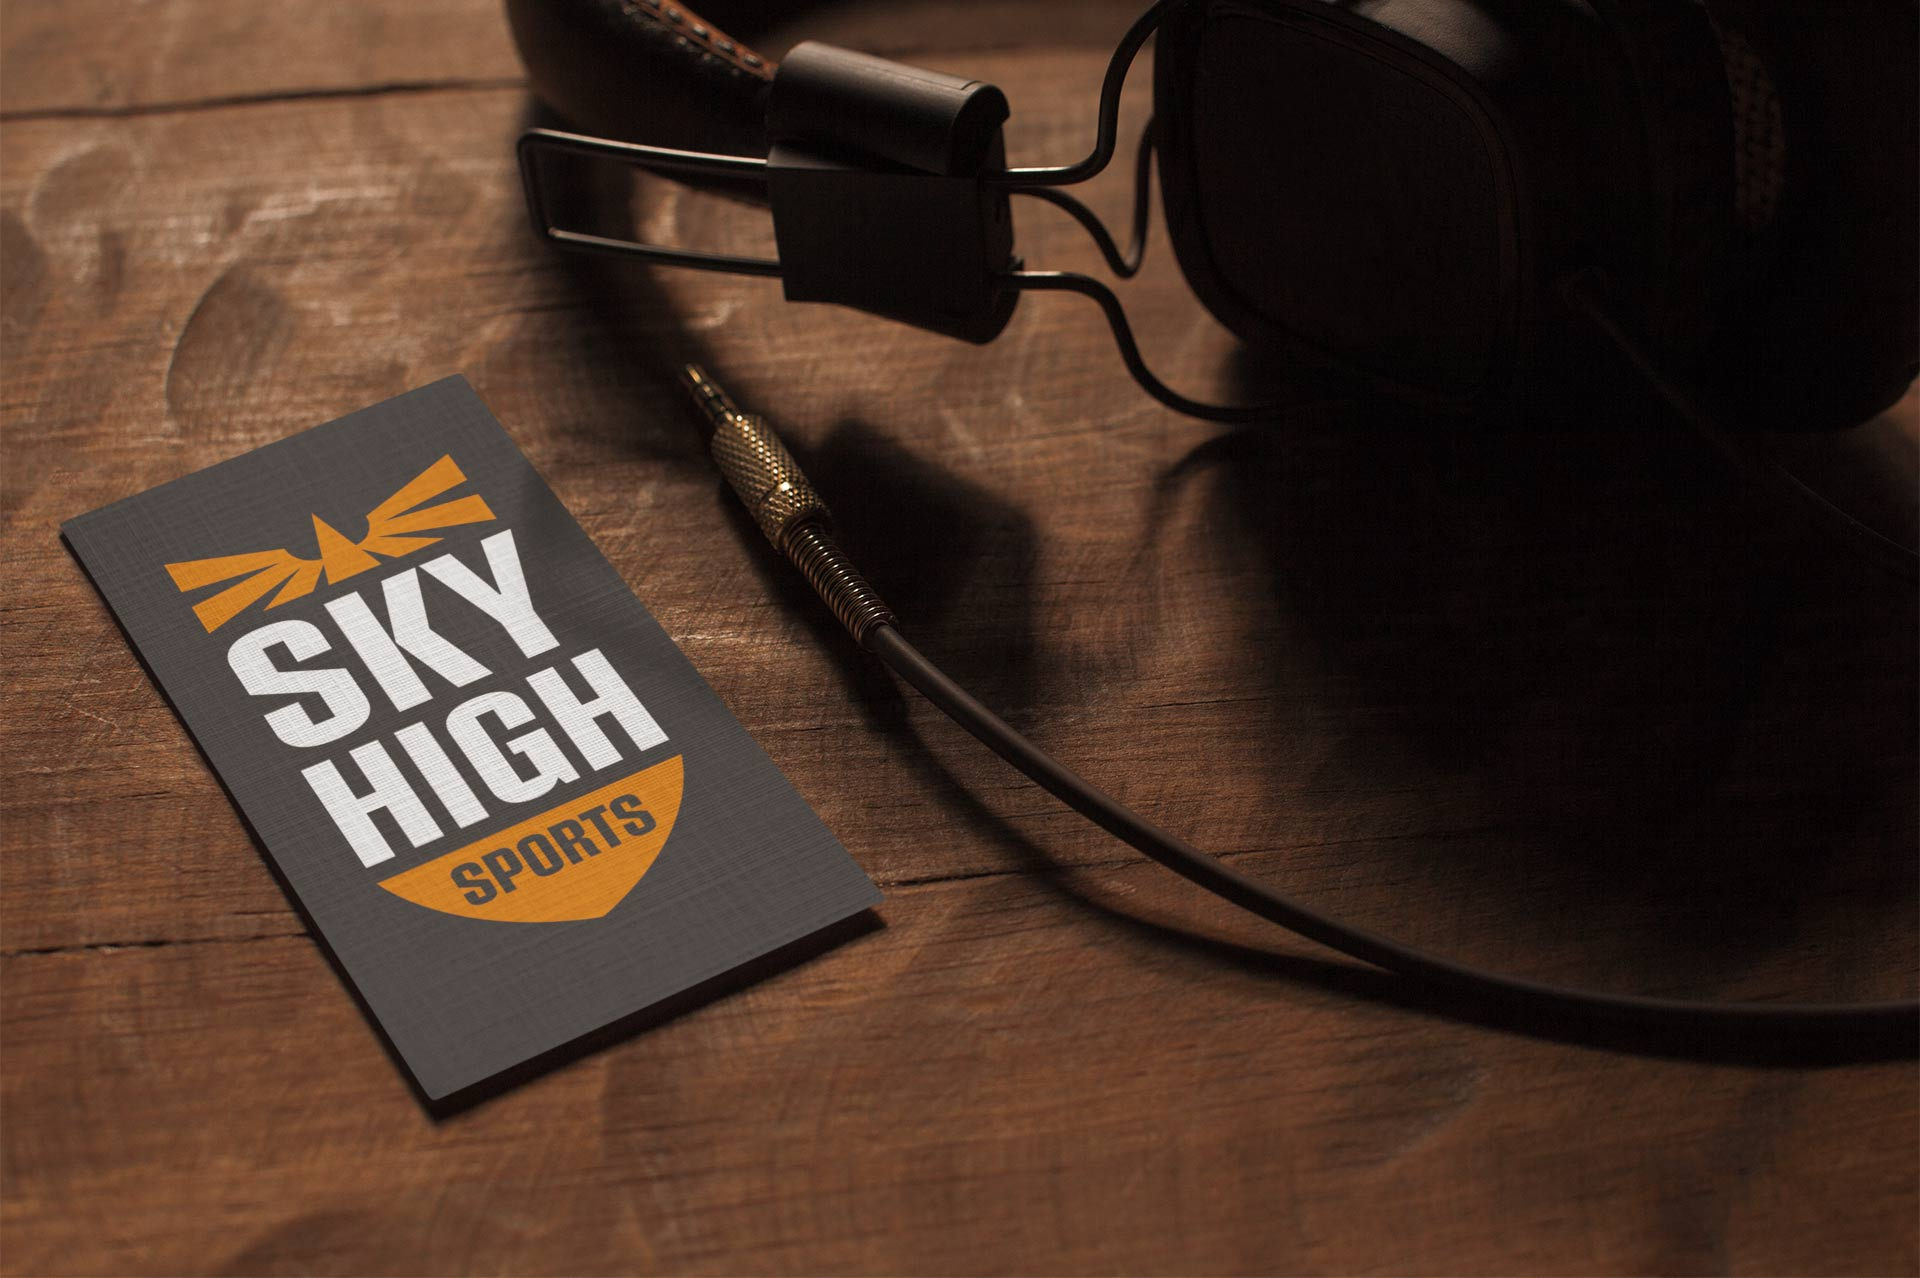 Sky High Sports logo on a business card